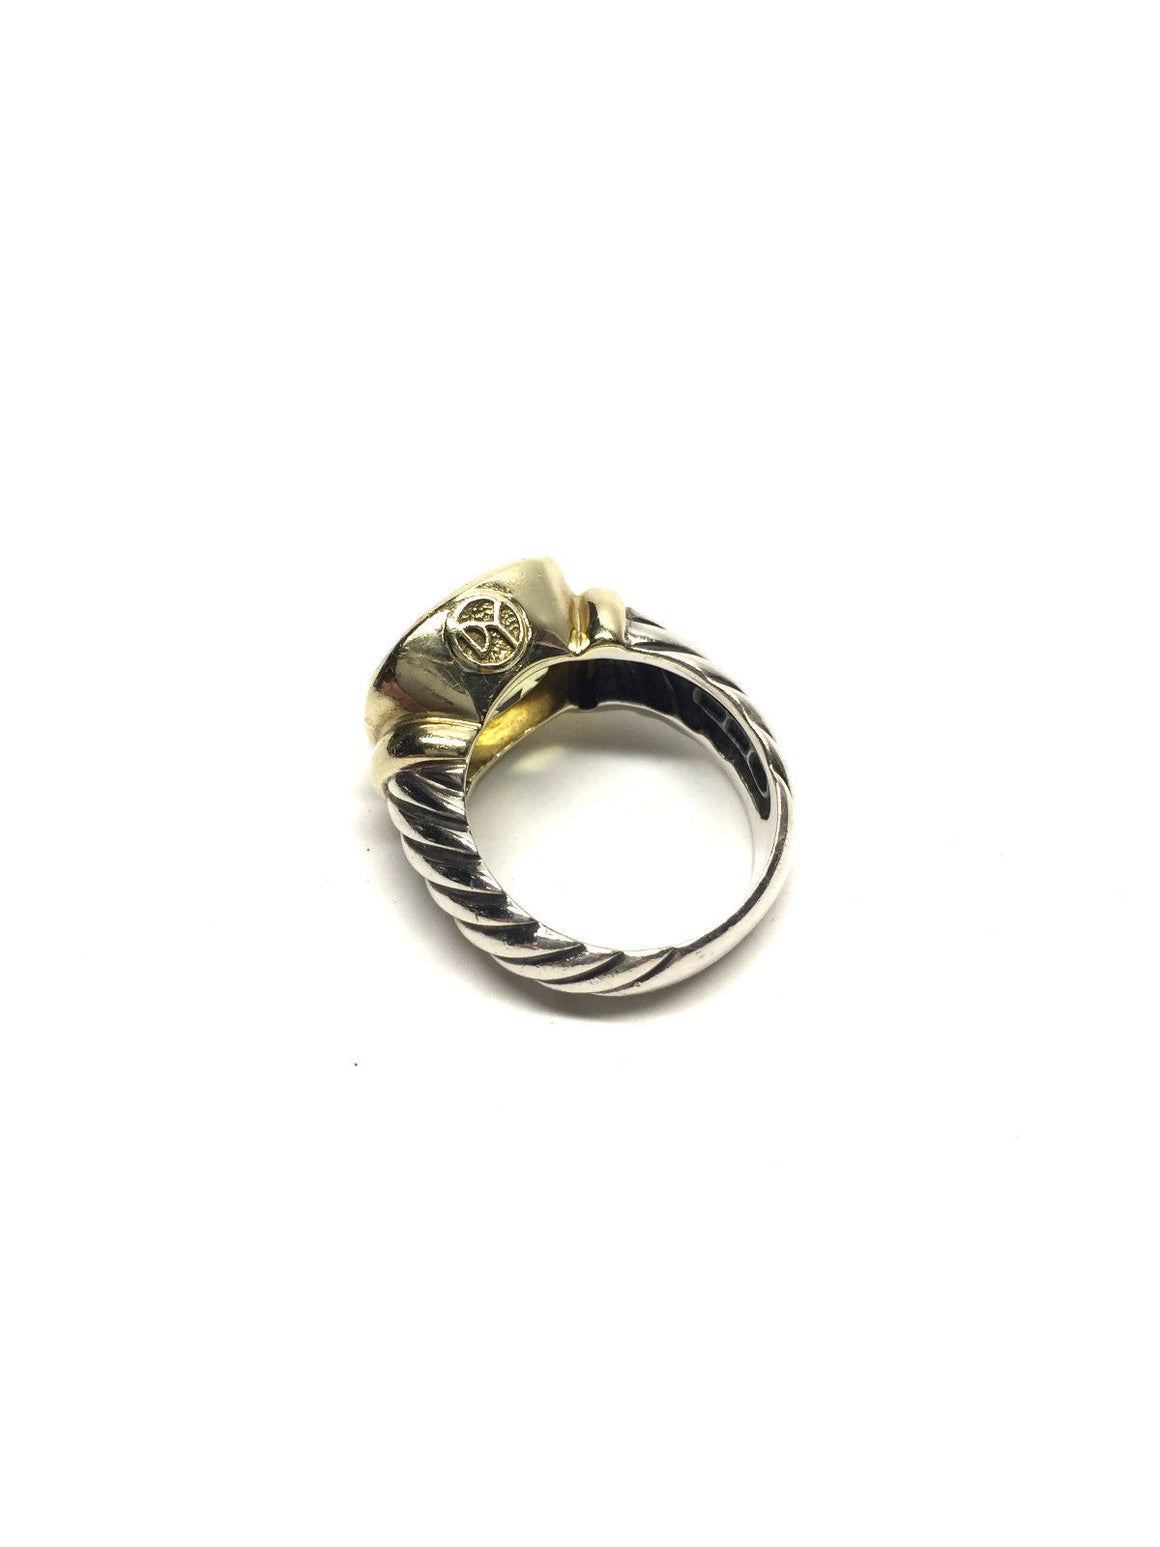 bisbiz.com DAVID YURMAN Sterling Silver 14K Gold Lemon Citrine NOBLESSE Ring Size: 7.5 - Bis Luxury Resale